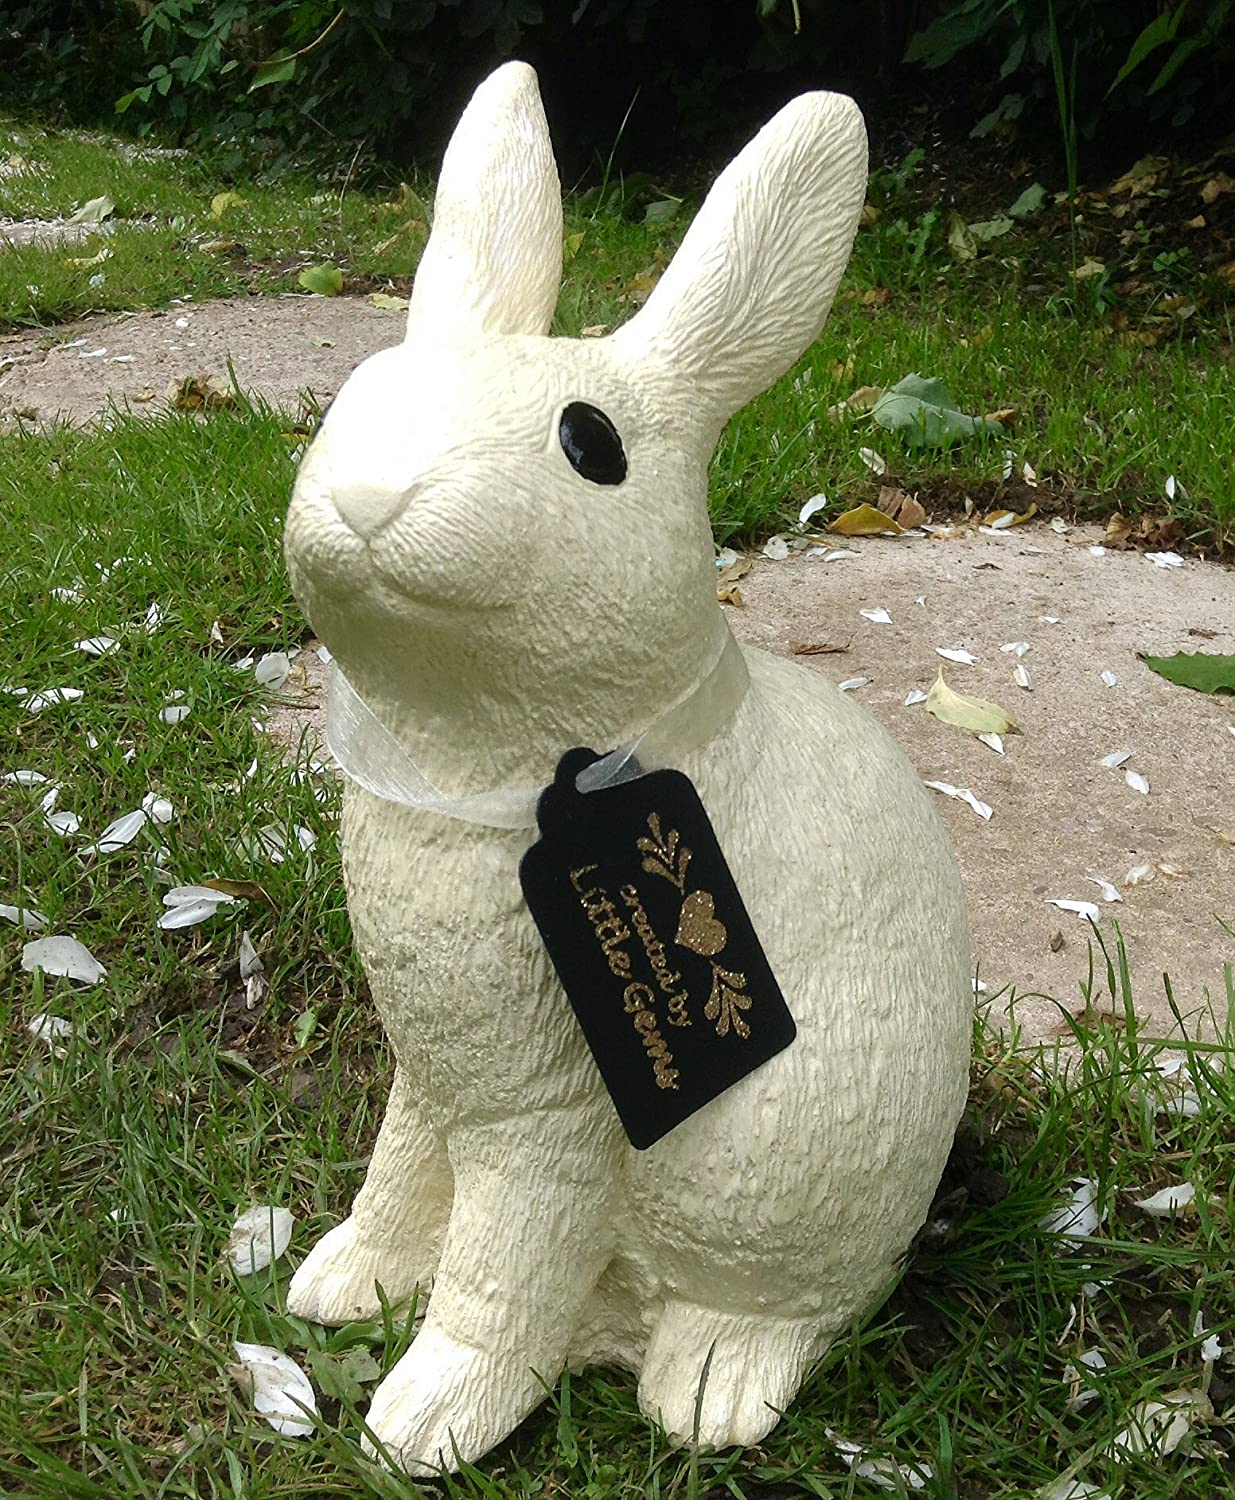 Stone Rabbit Bunny Statue Ornament Garden And Home Gift